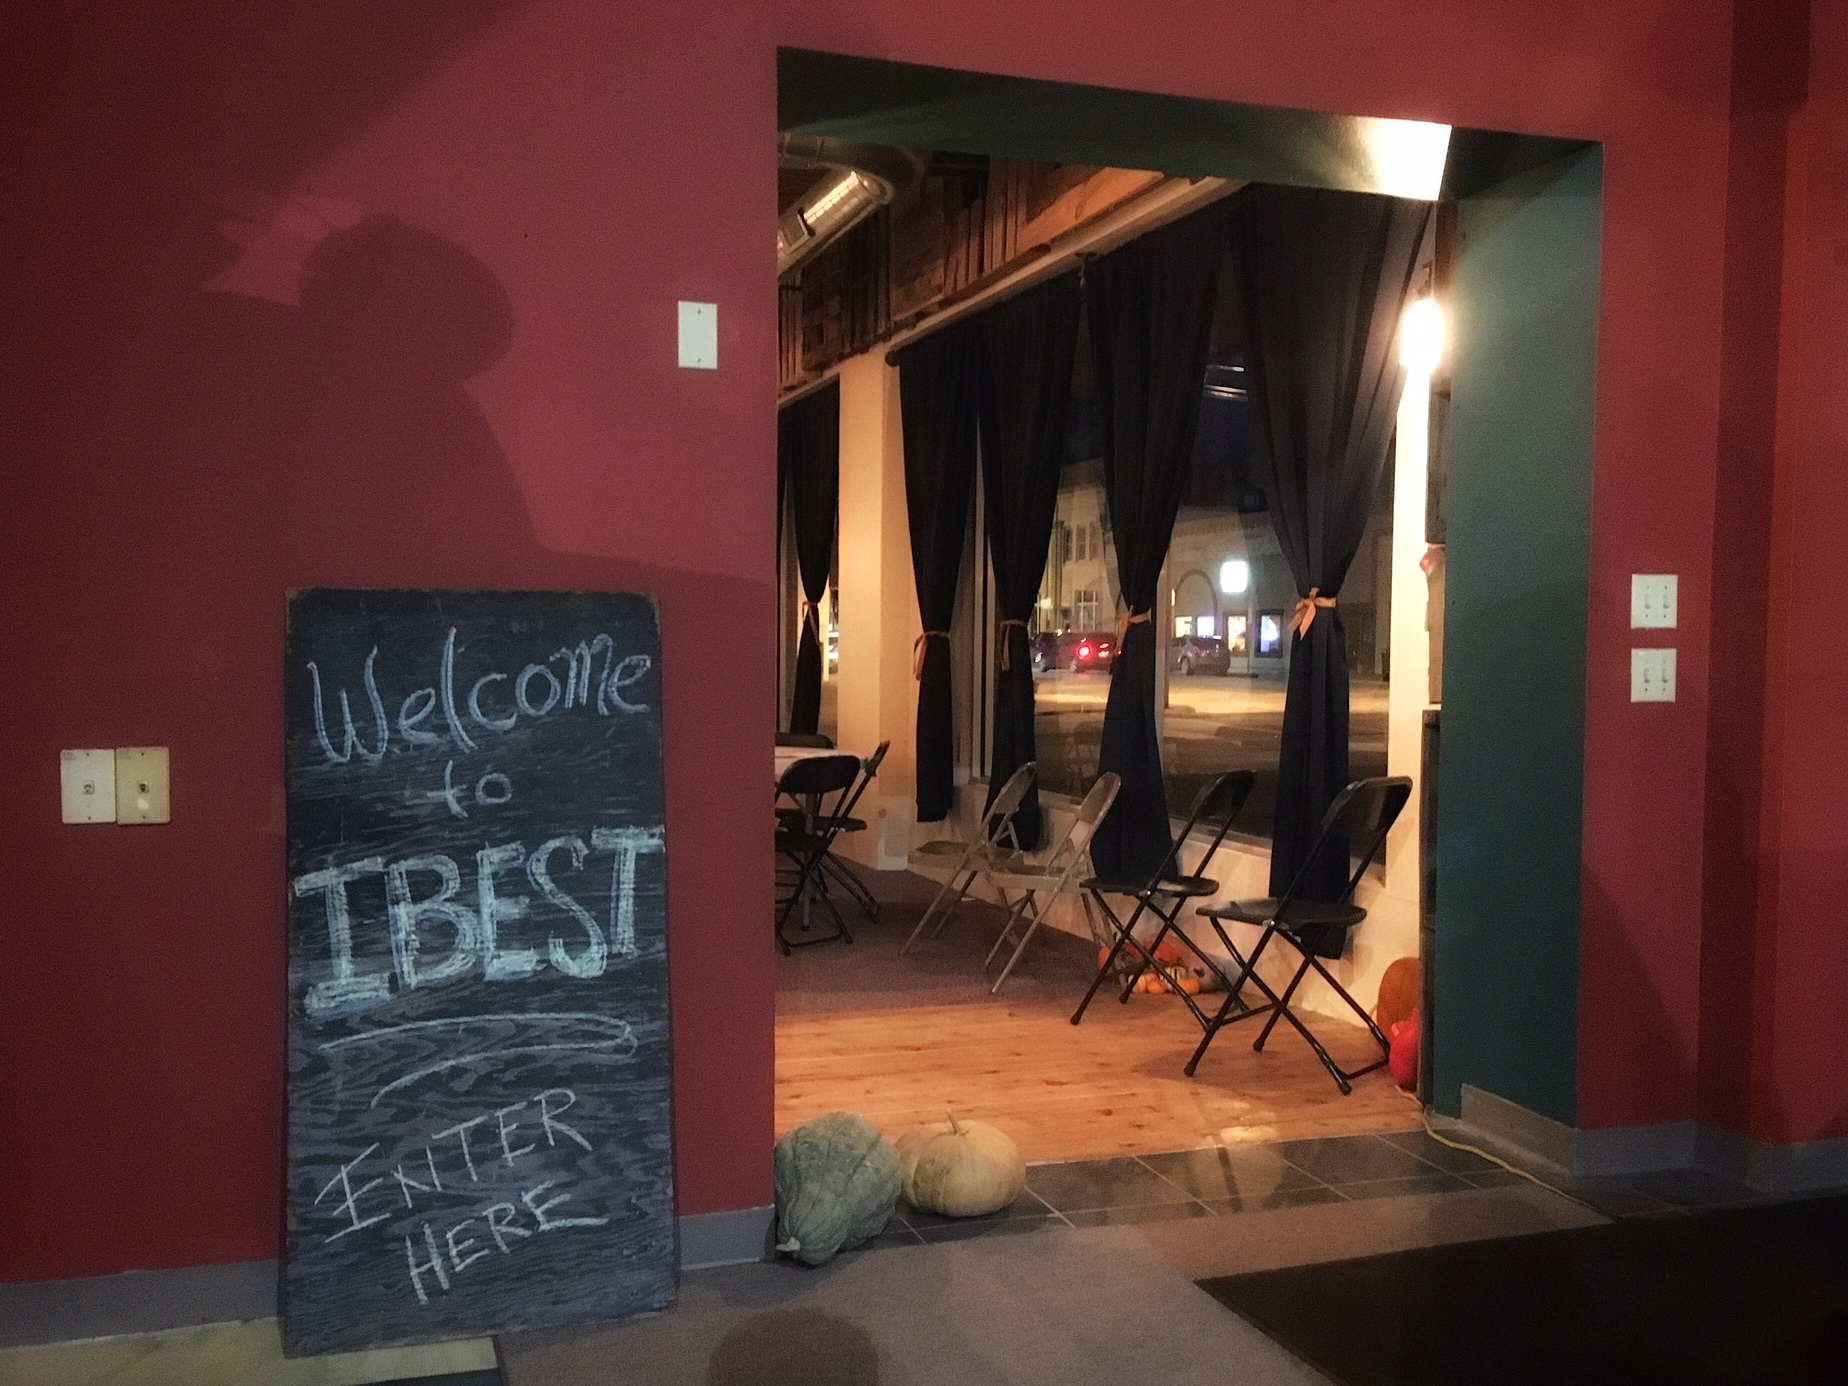 ibest-entry